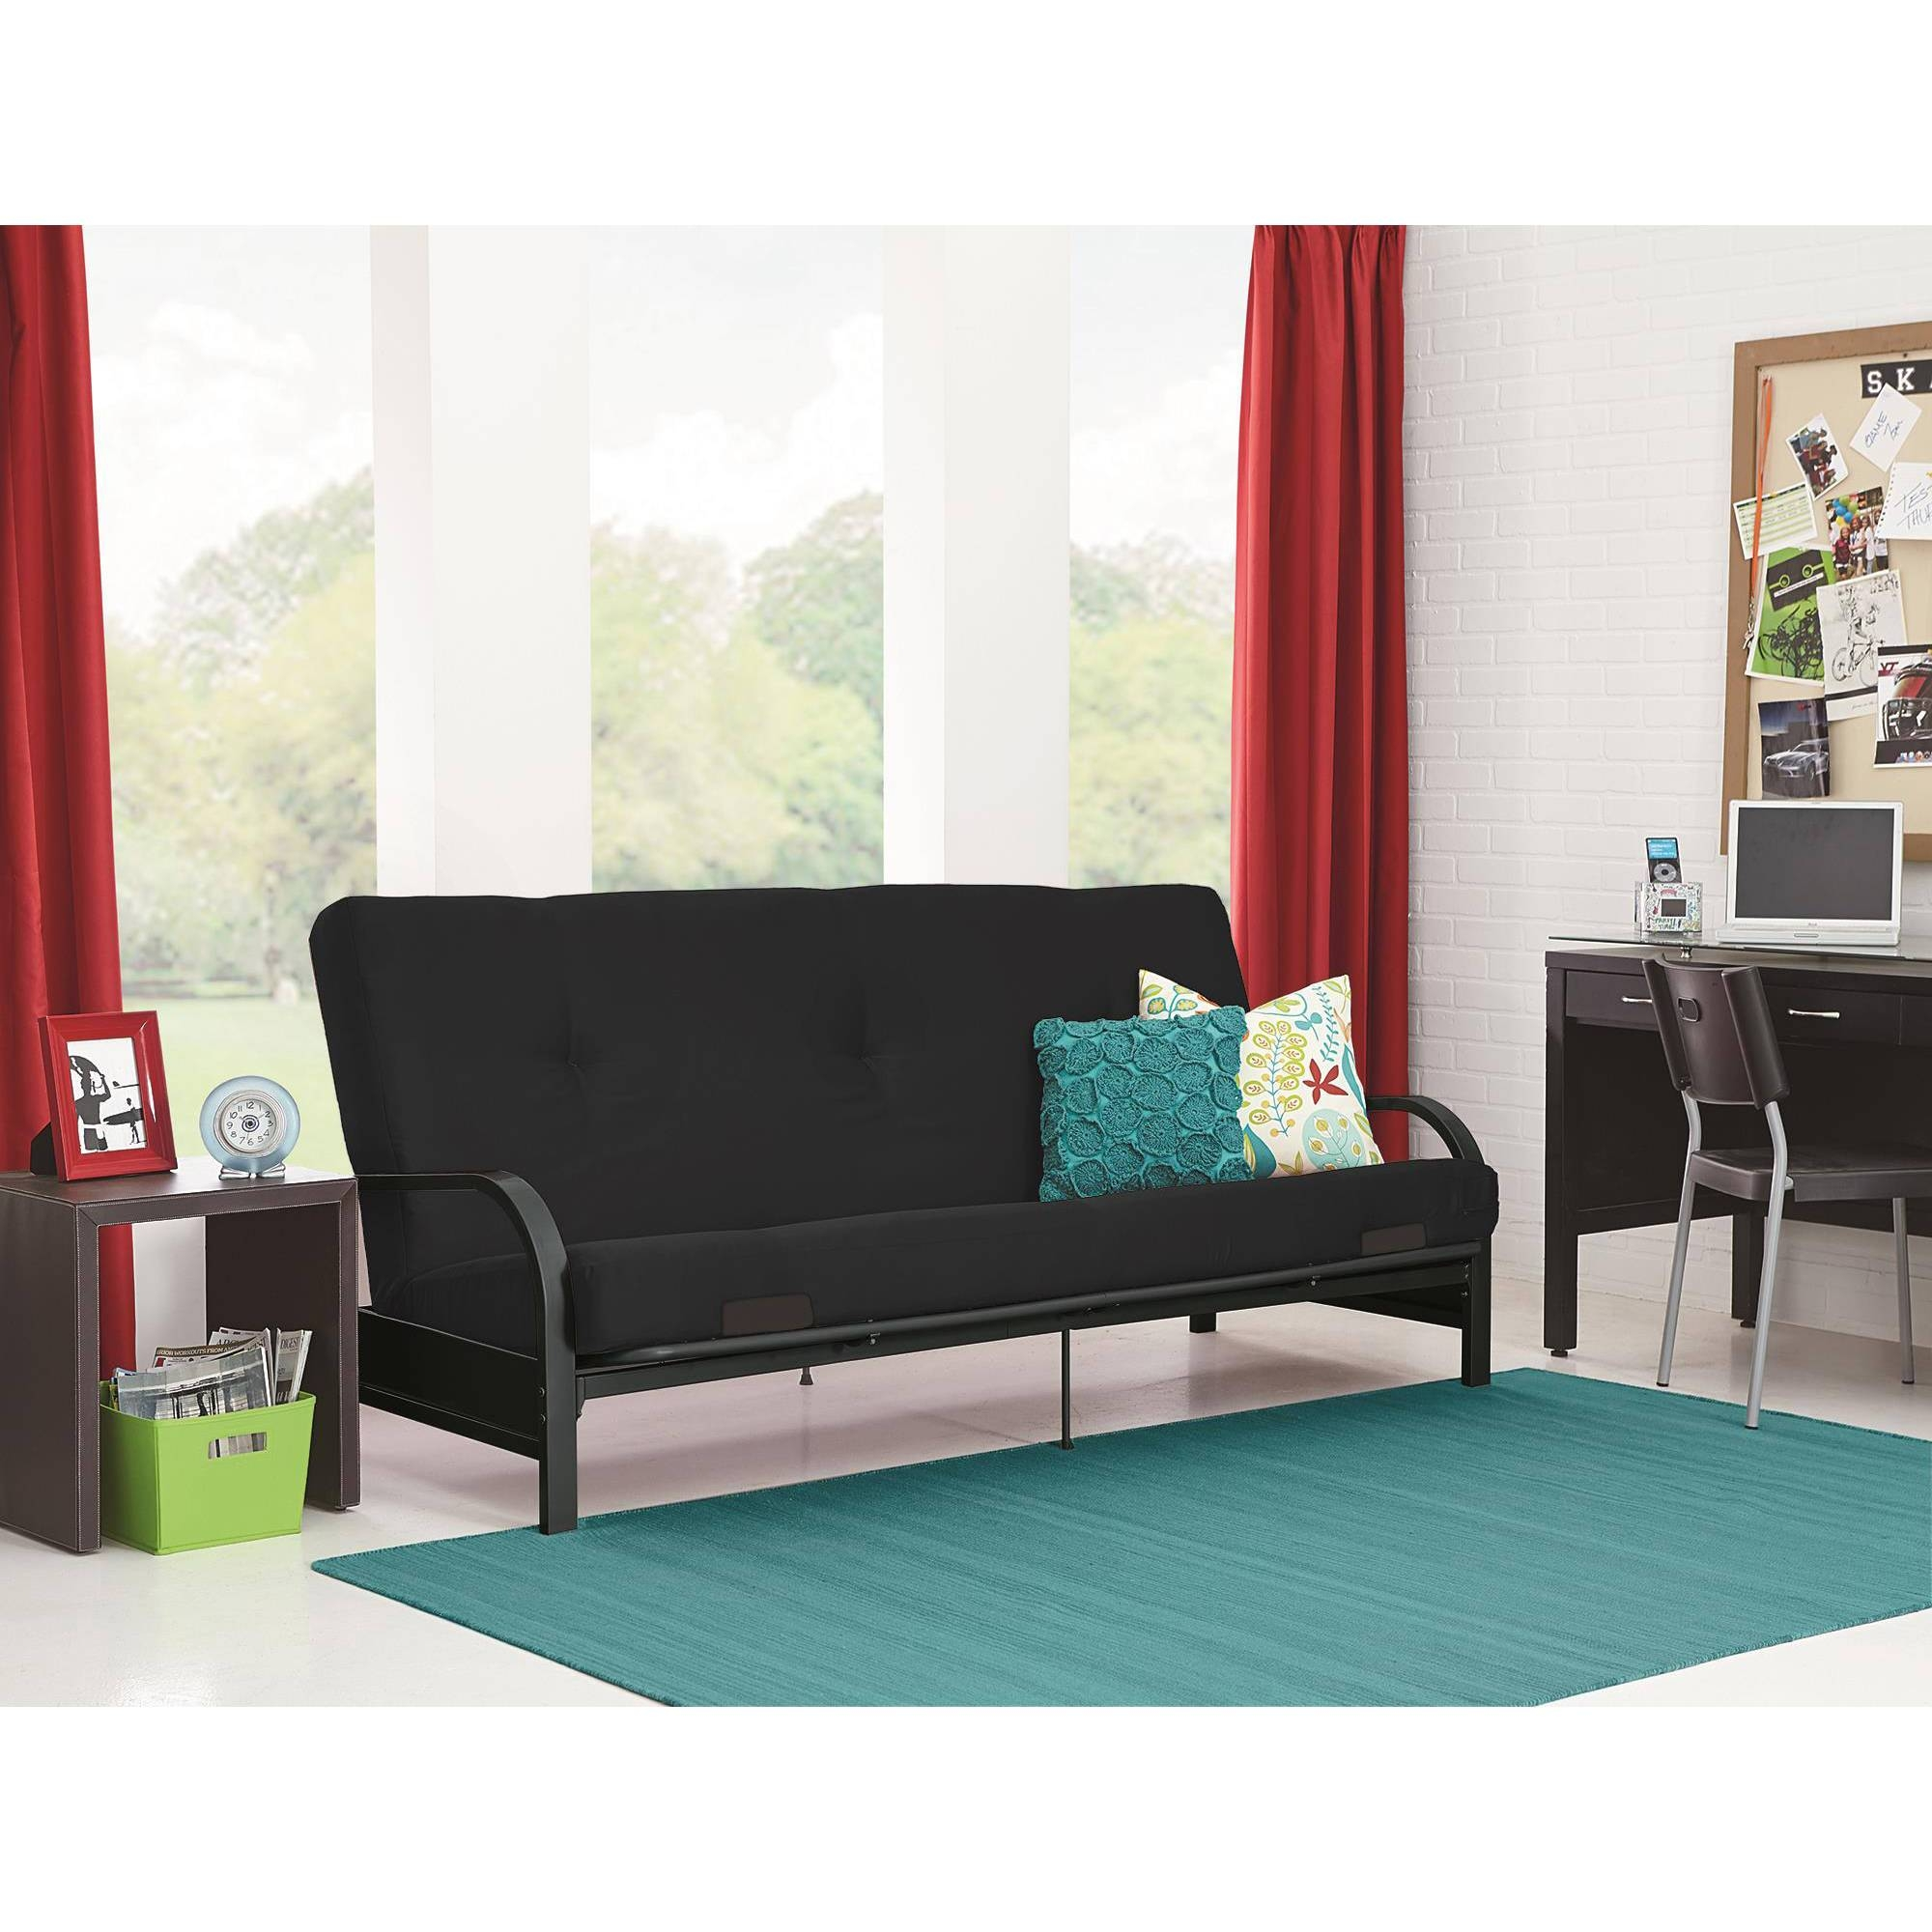 Sofa: Modern Look With A Low Profile Style With Walmart Sofa Bed in 6 Foot Sofas (Image 12 of 30)